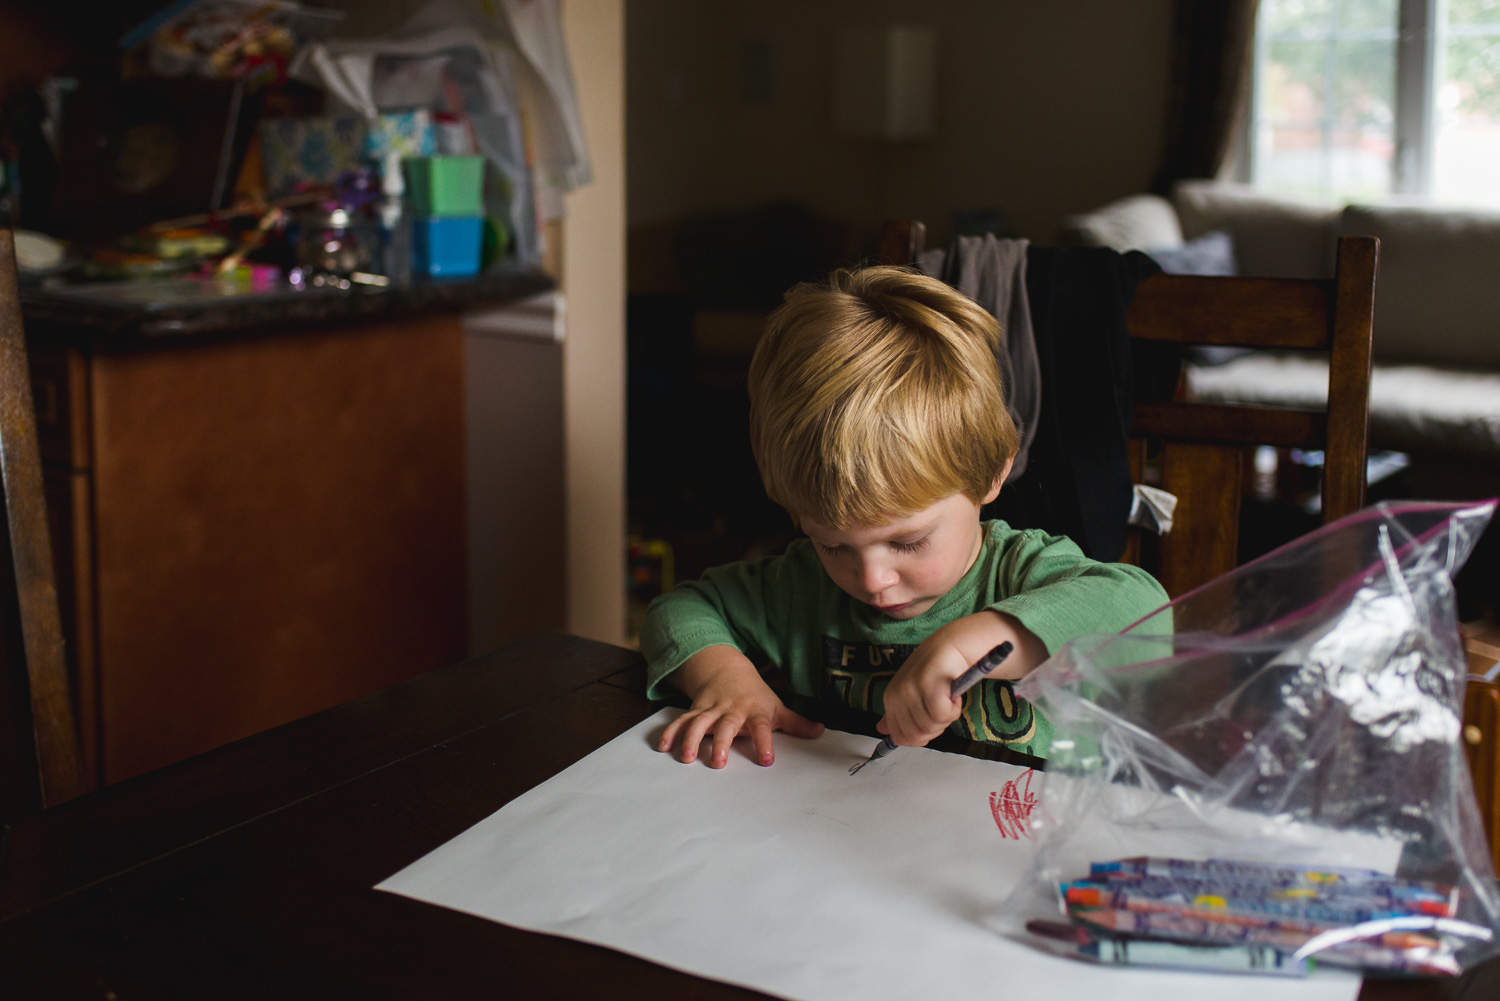 Little boy drawing at table.